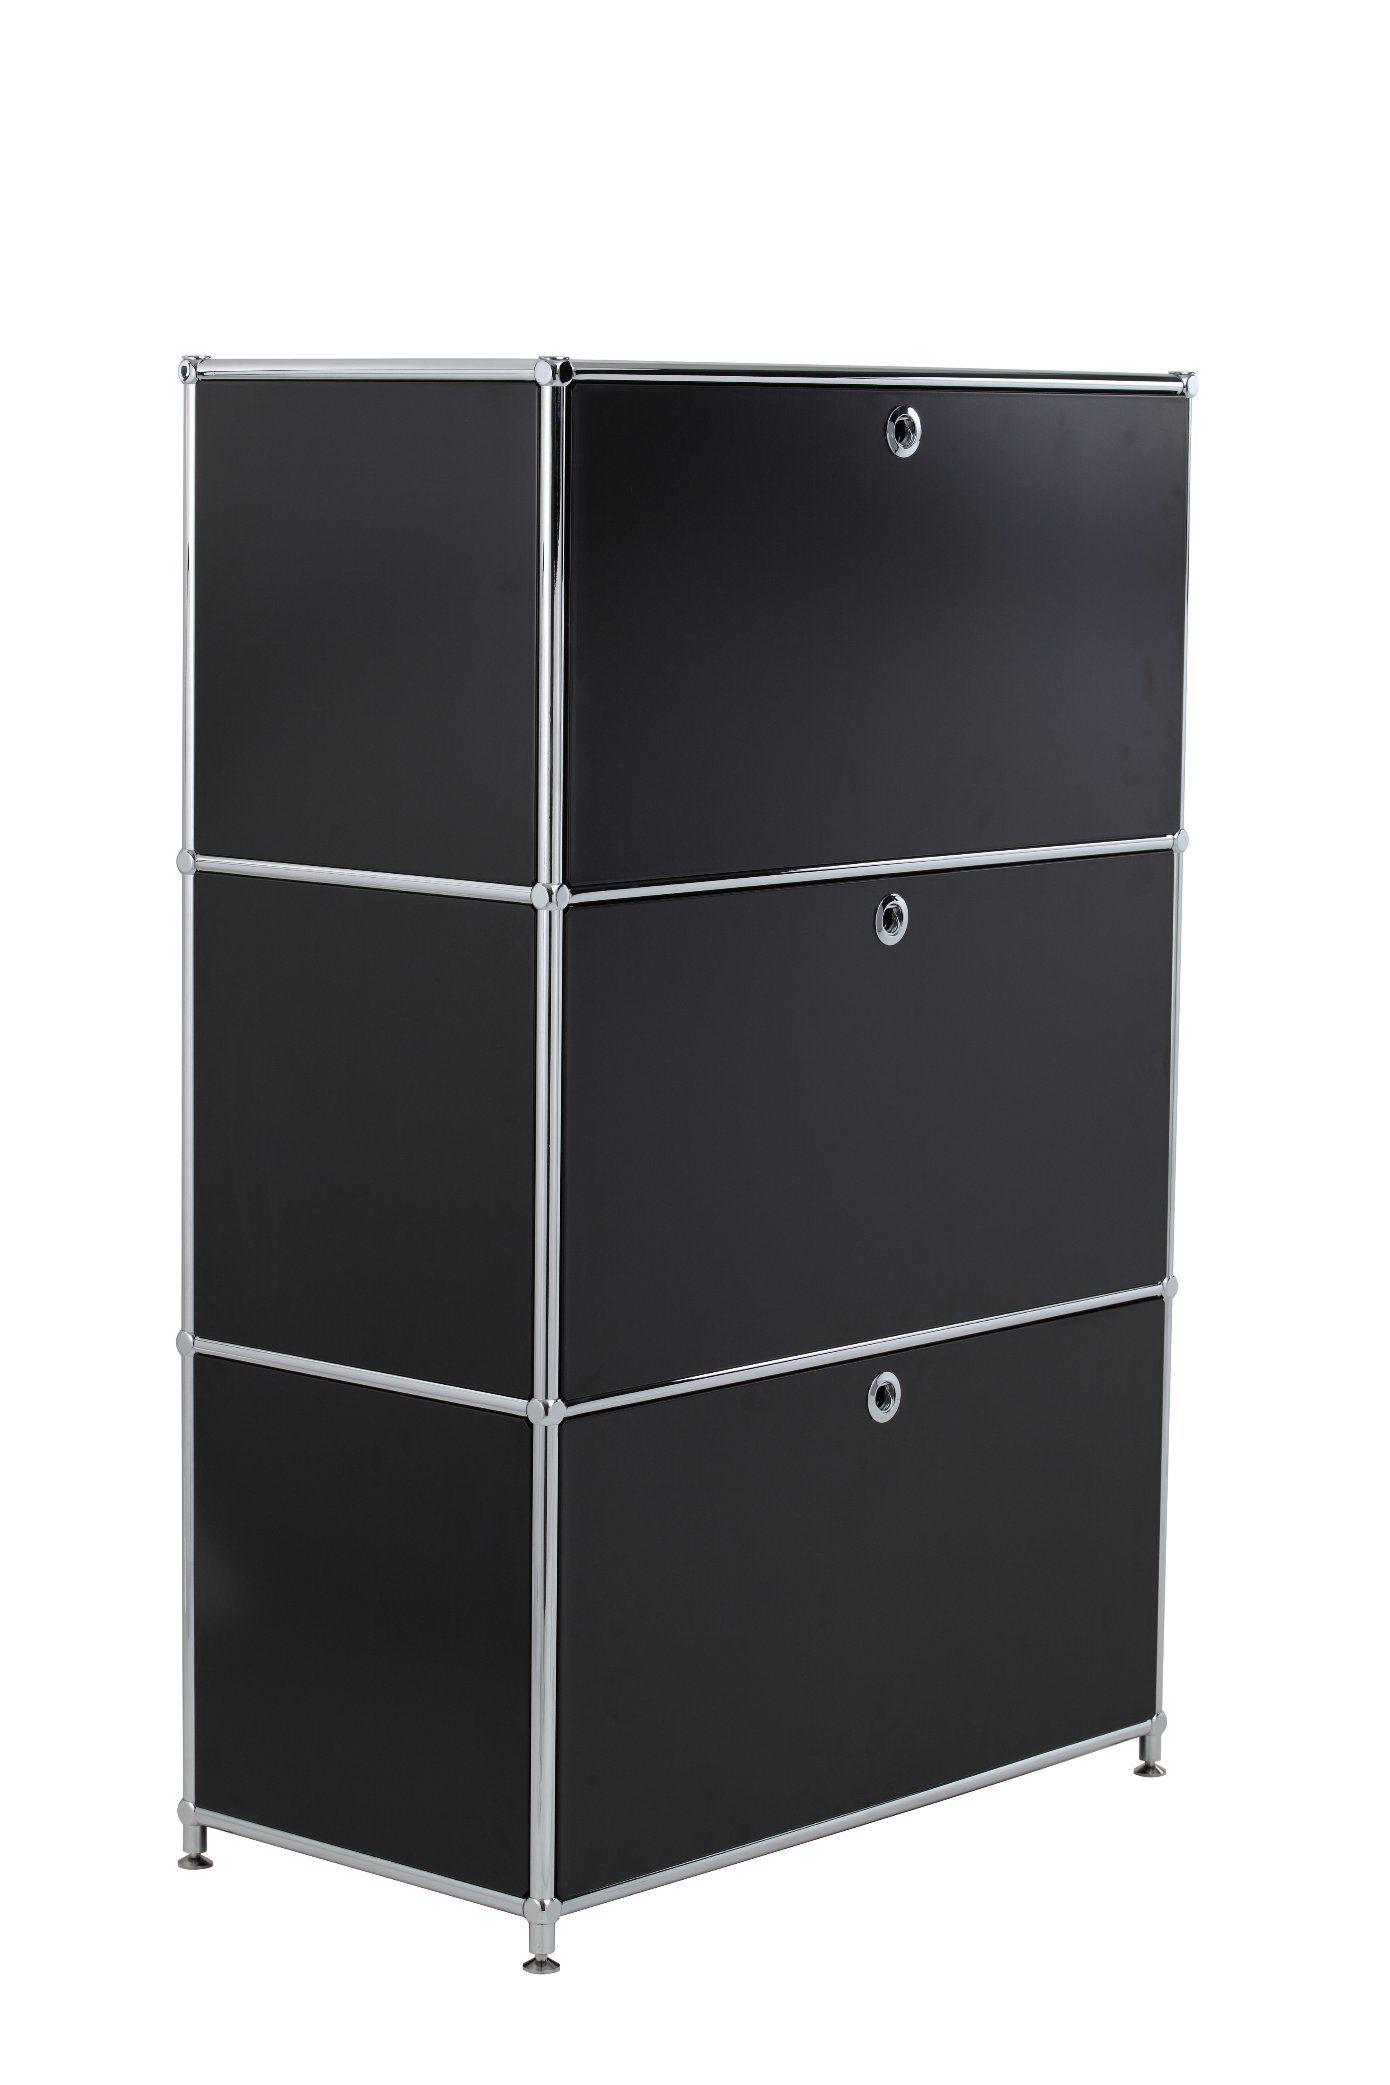 2017 New Sliding Door Stainless Panels Toy Display Steel Filing Cabinet